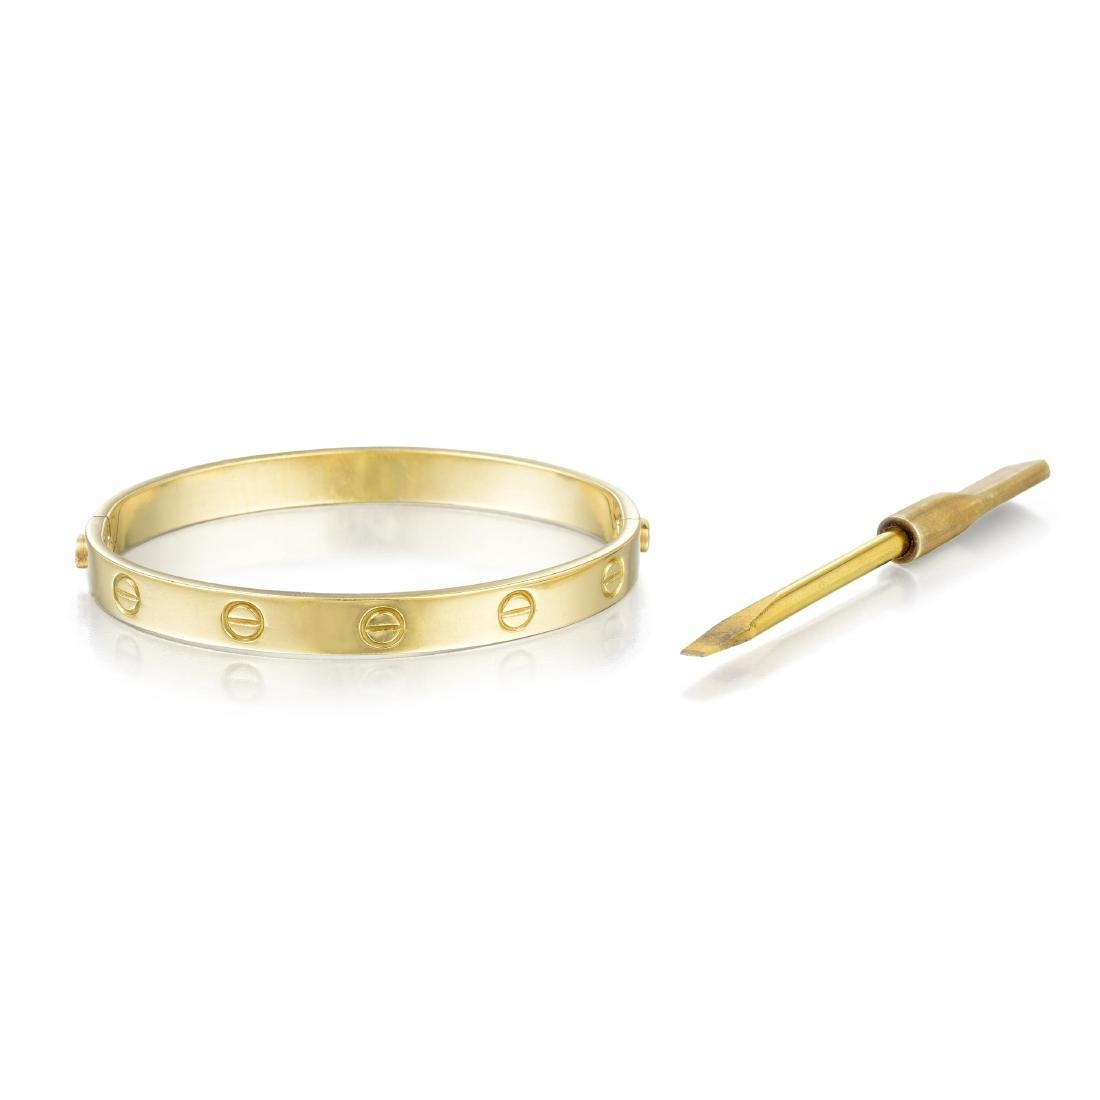 Cartier 18K Gold Love Bangle, with Screwdriver